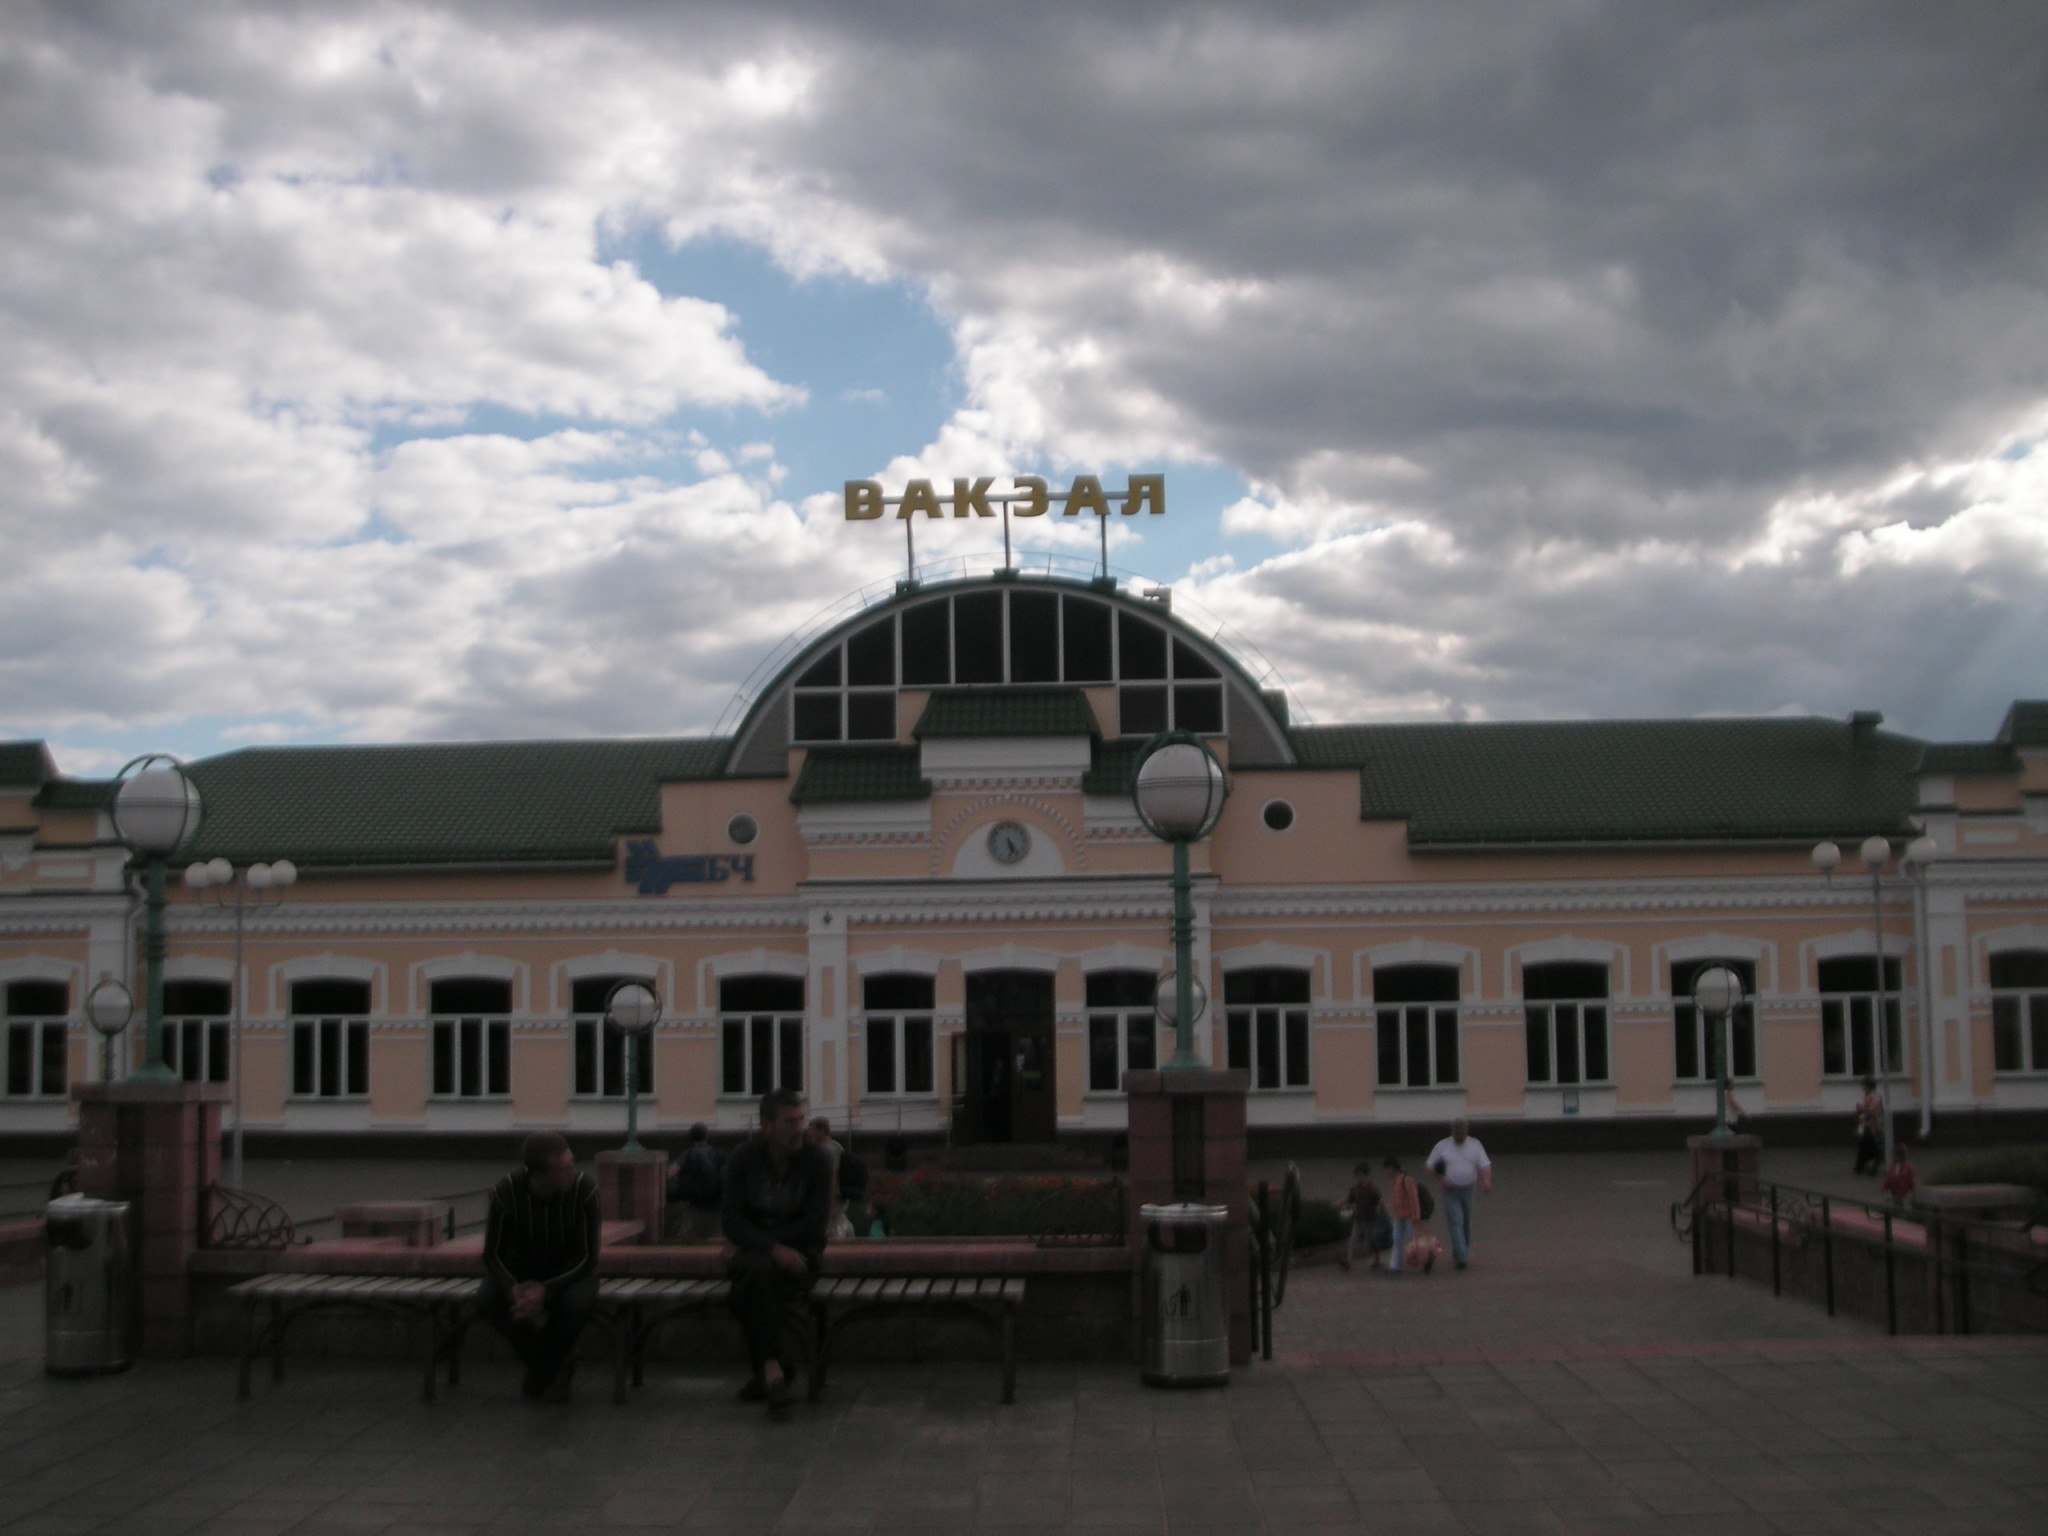 Backpacking in Belarus: Top 5 Sights in Bobruisk